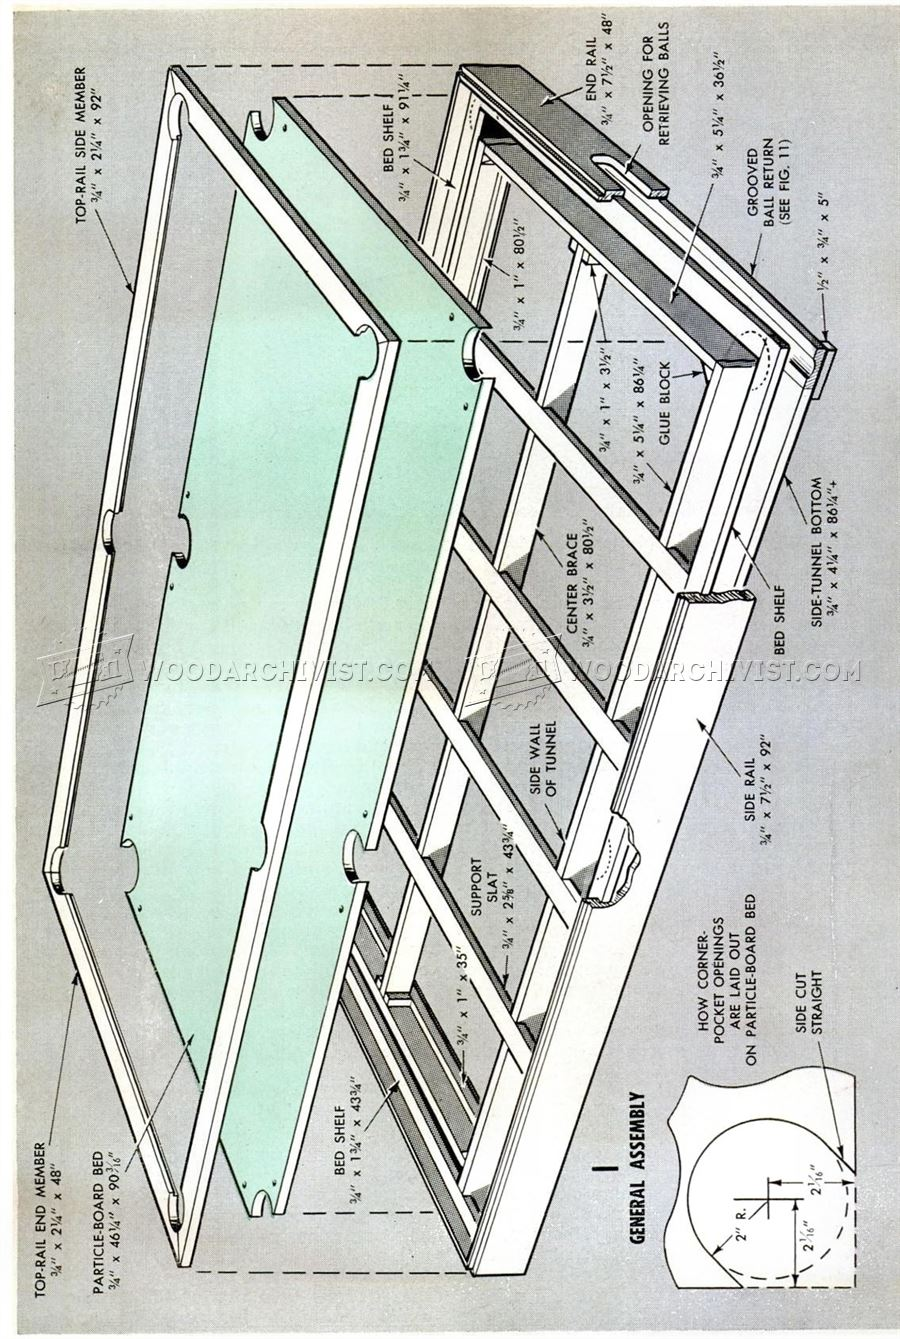 Diy pool table woodarchivist for Pool design blueprints